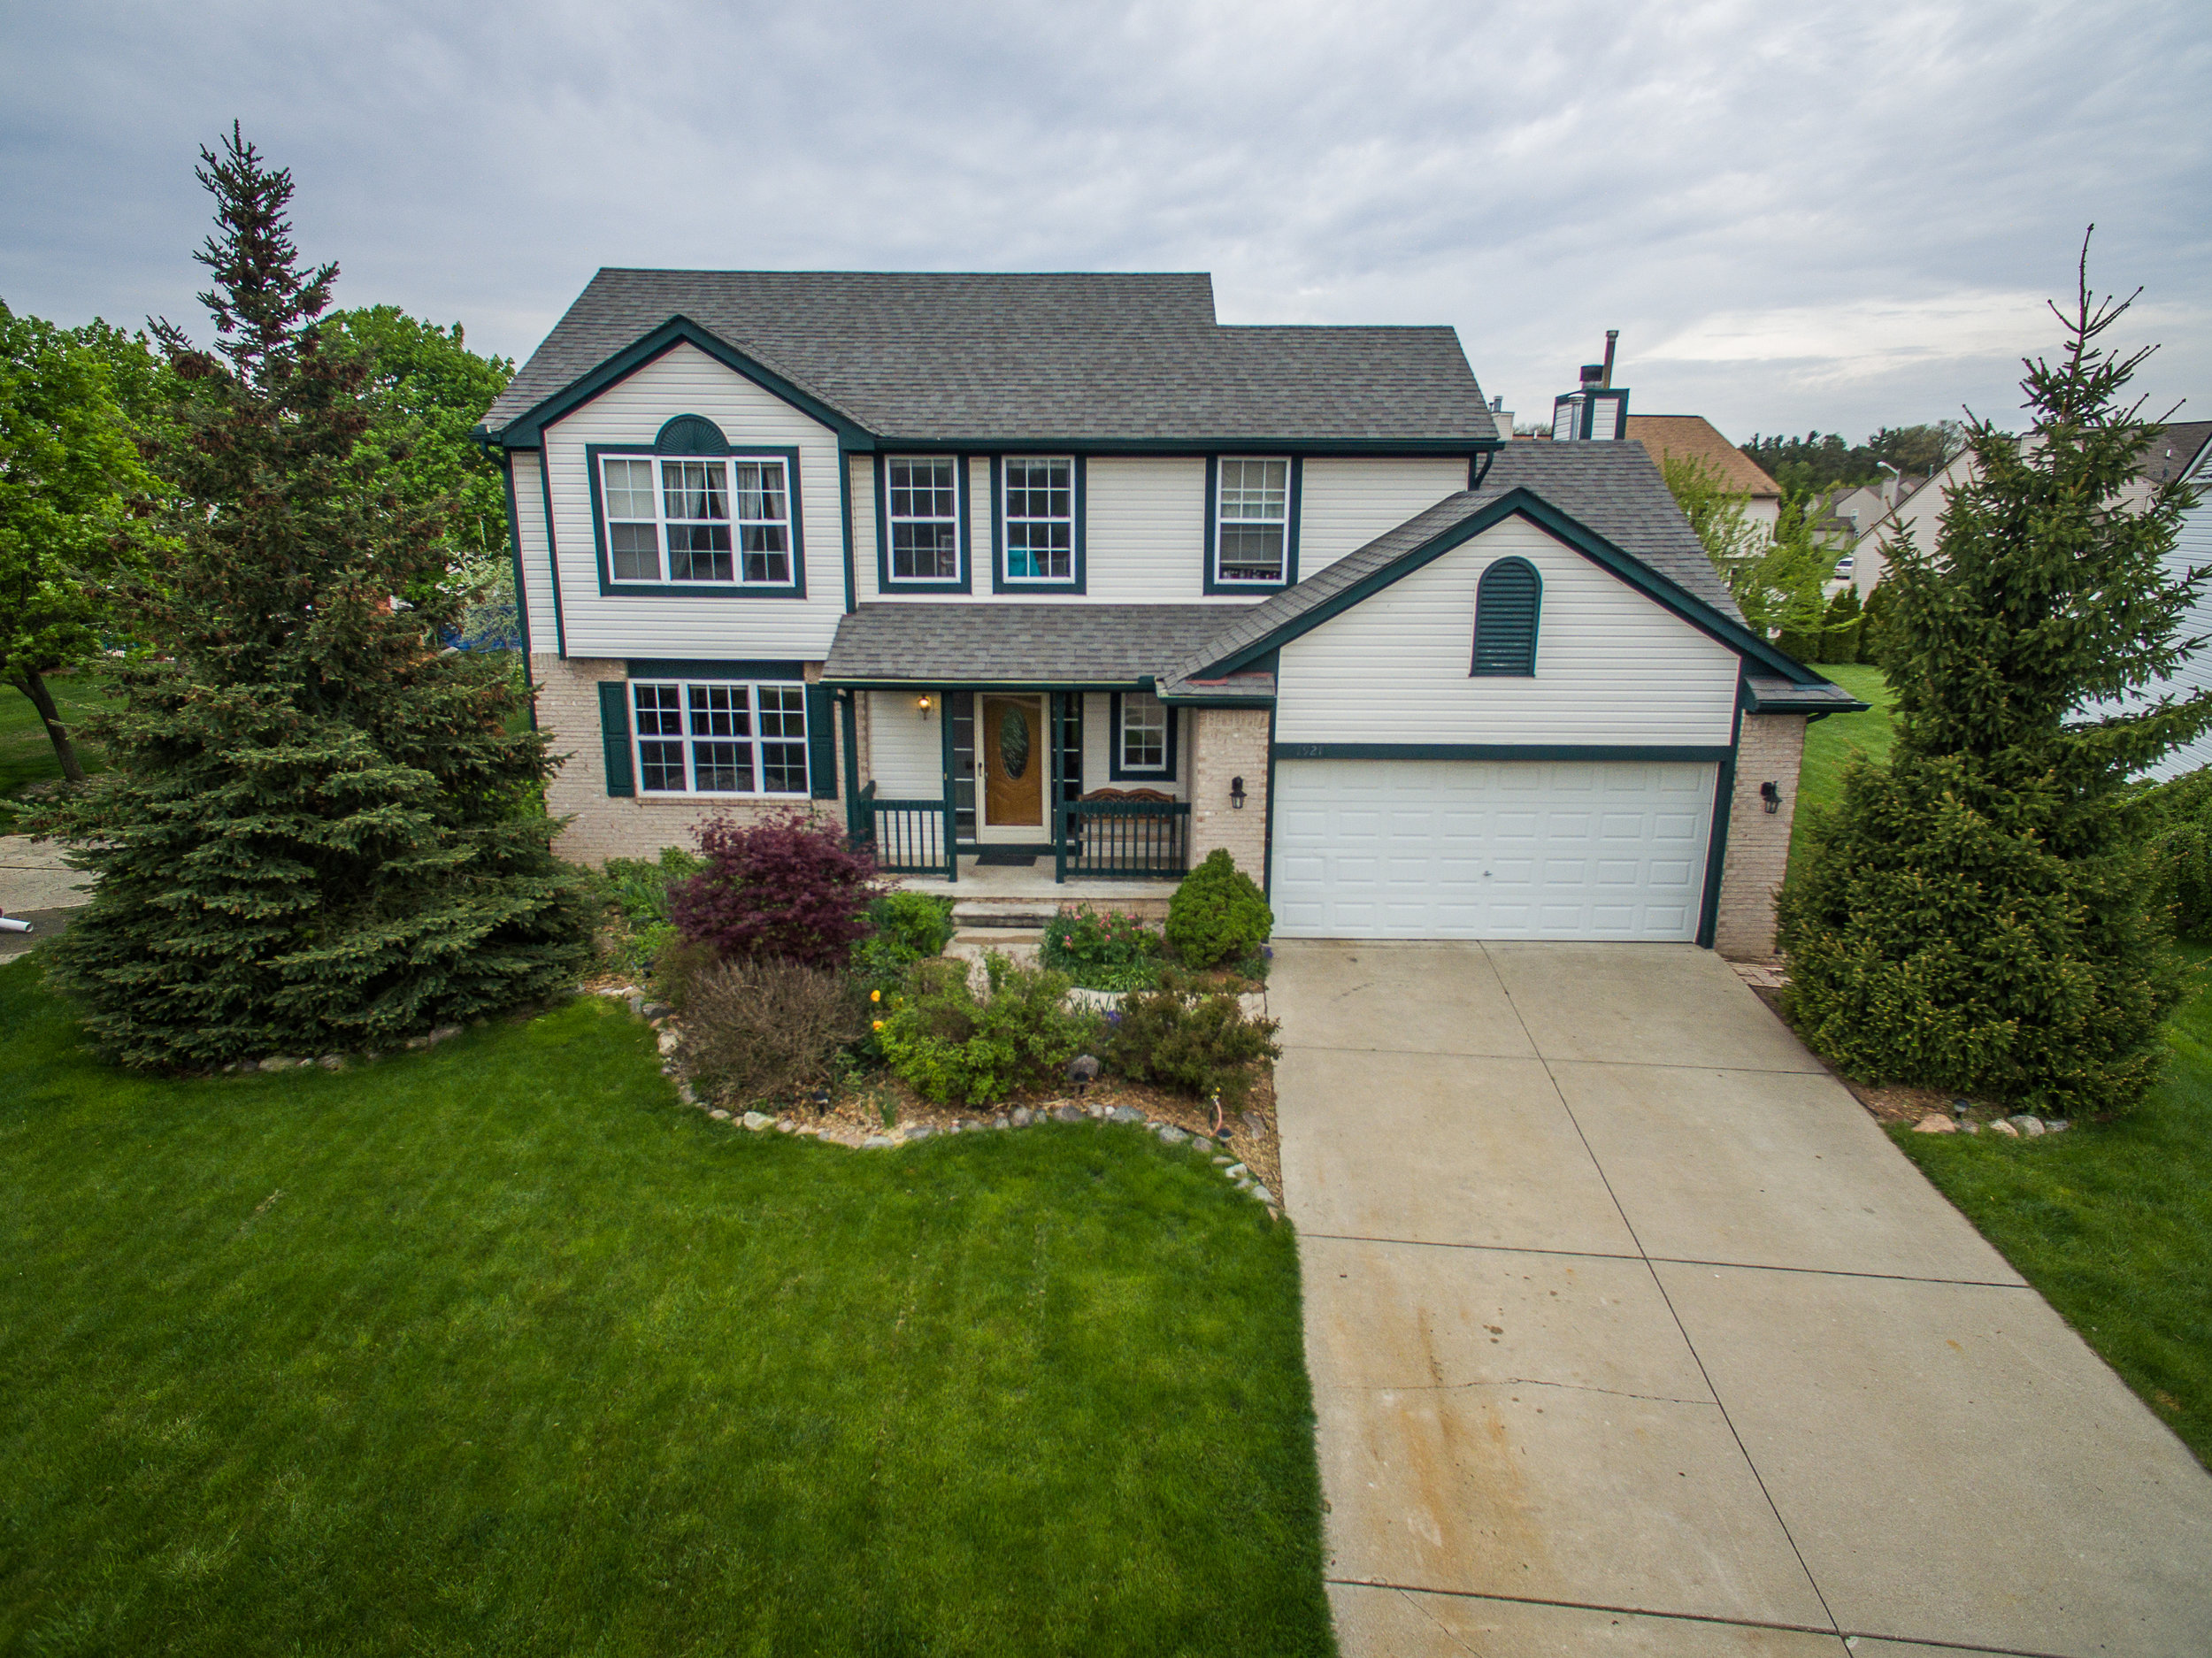 Oak Squire- Howell - $208,000   DOM 21 / Sold for $9,000 over asking price / 10 Showings